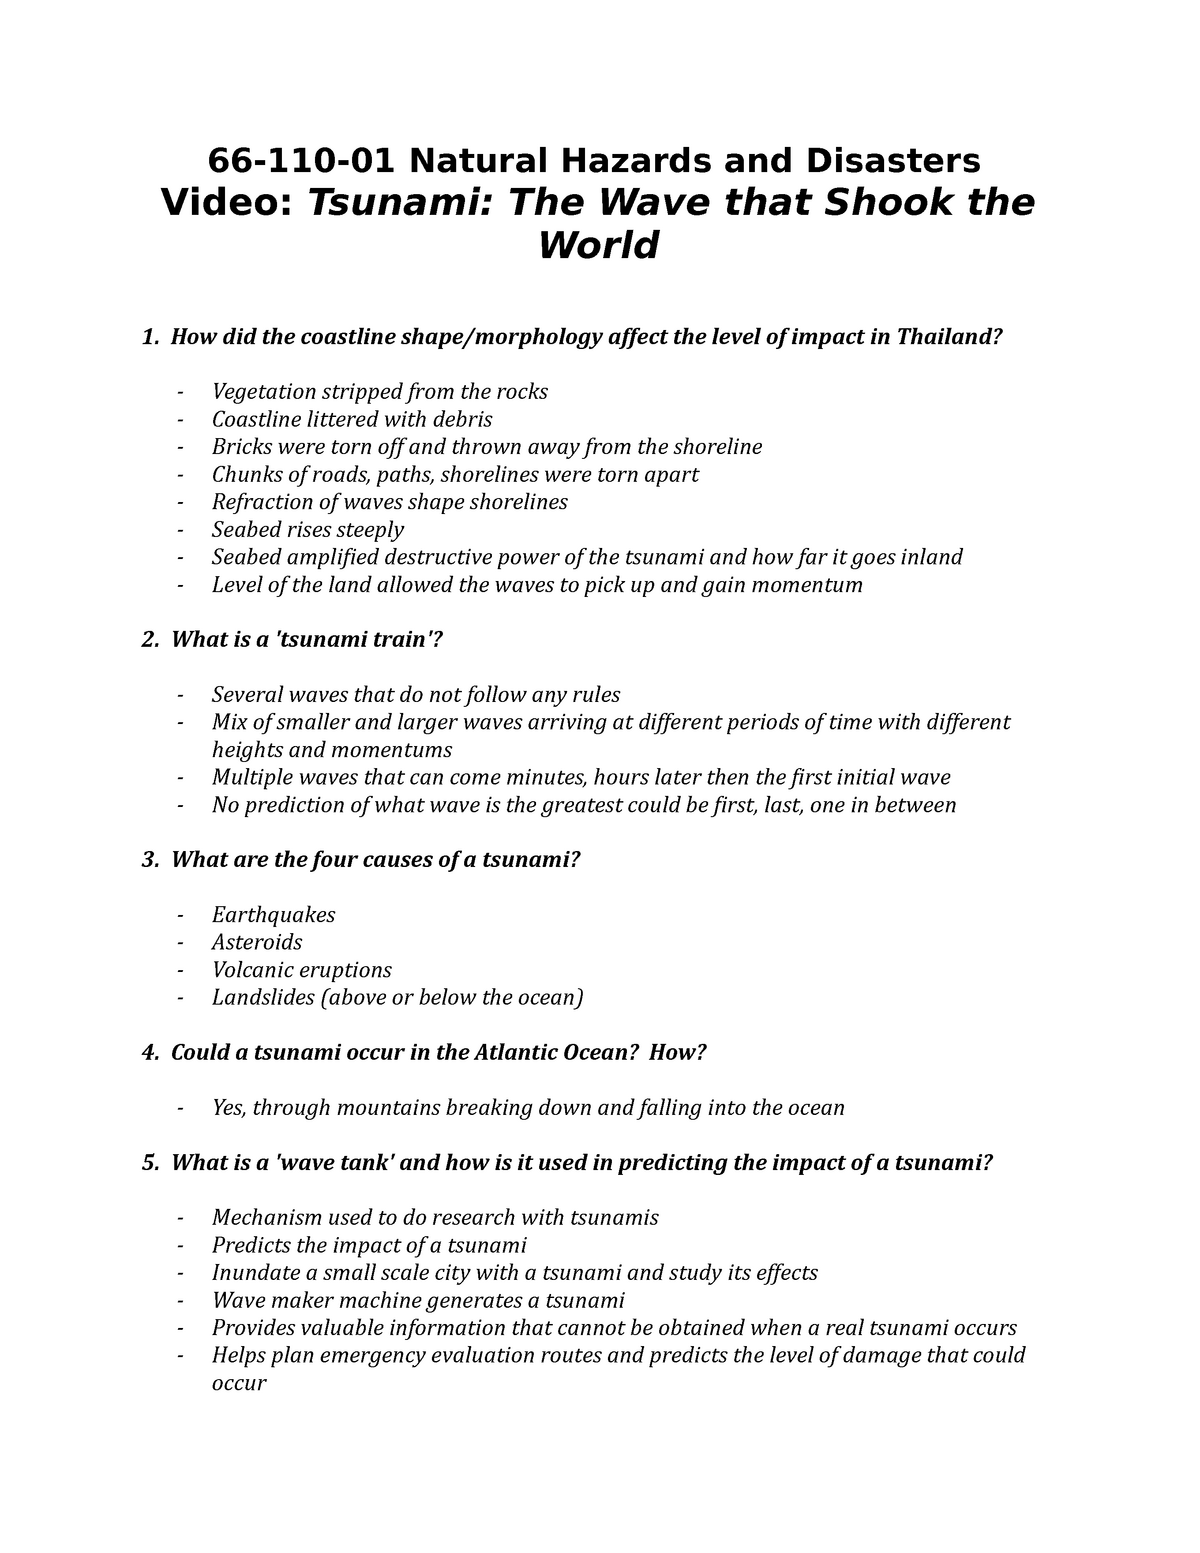 Video Questions - Tsunami - 03 66 110: Natural Hazards and Disasters